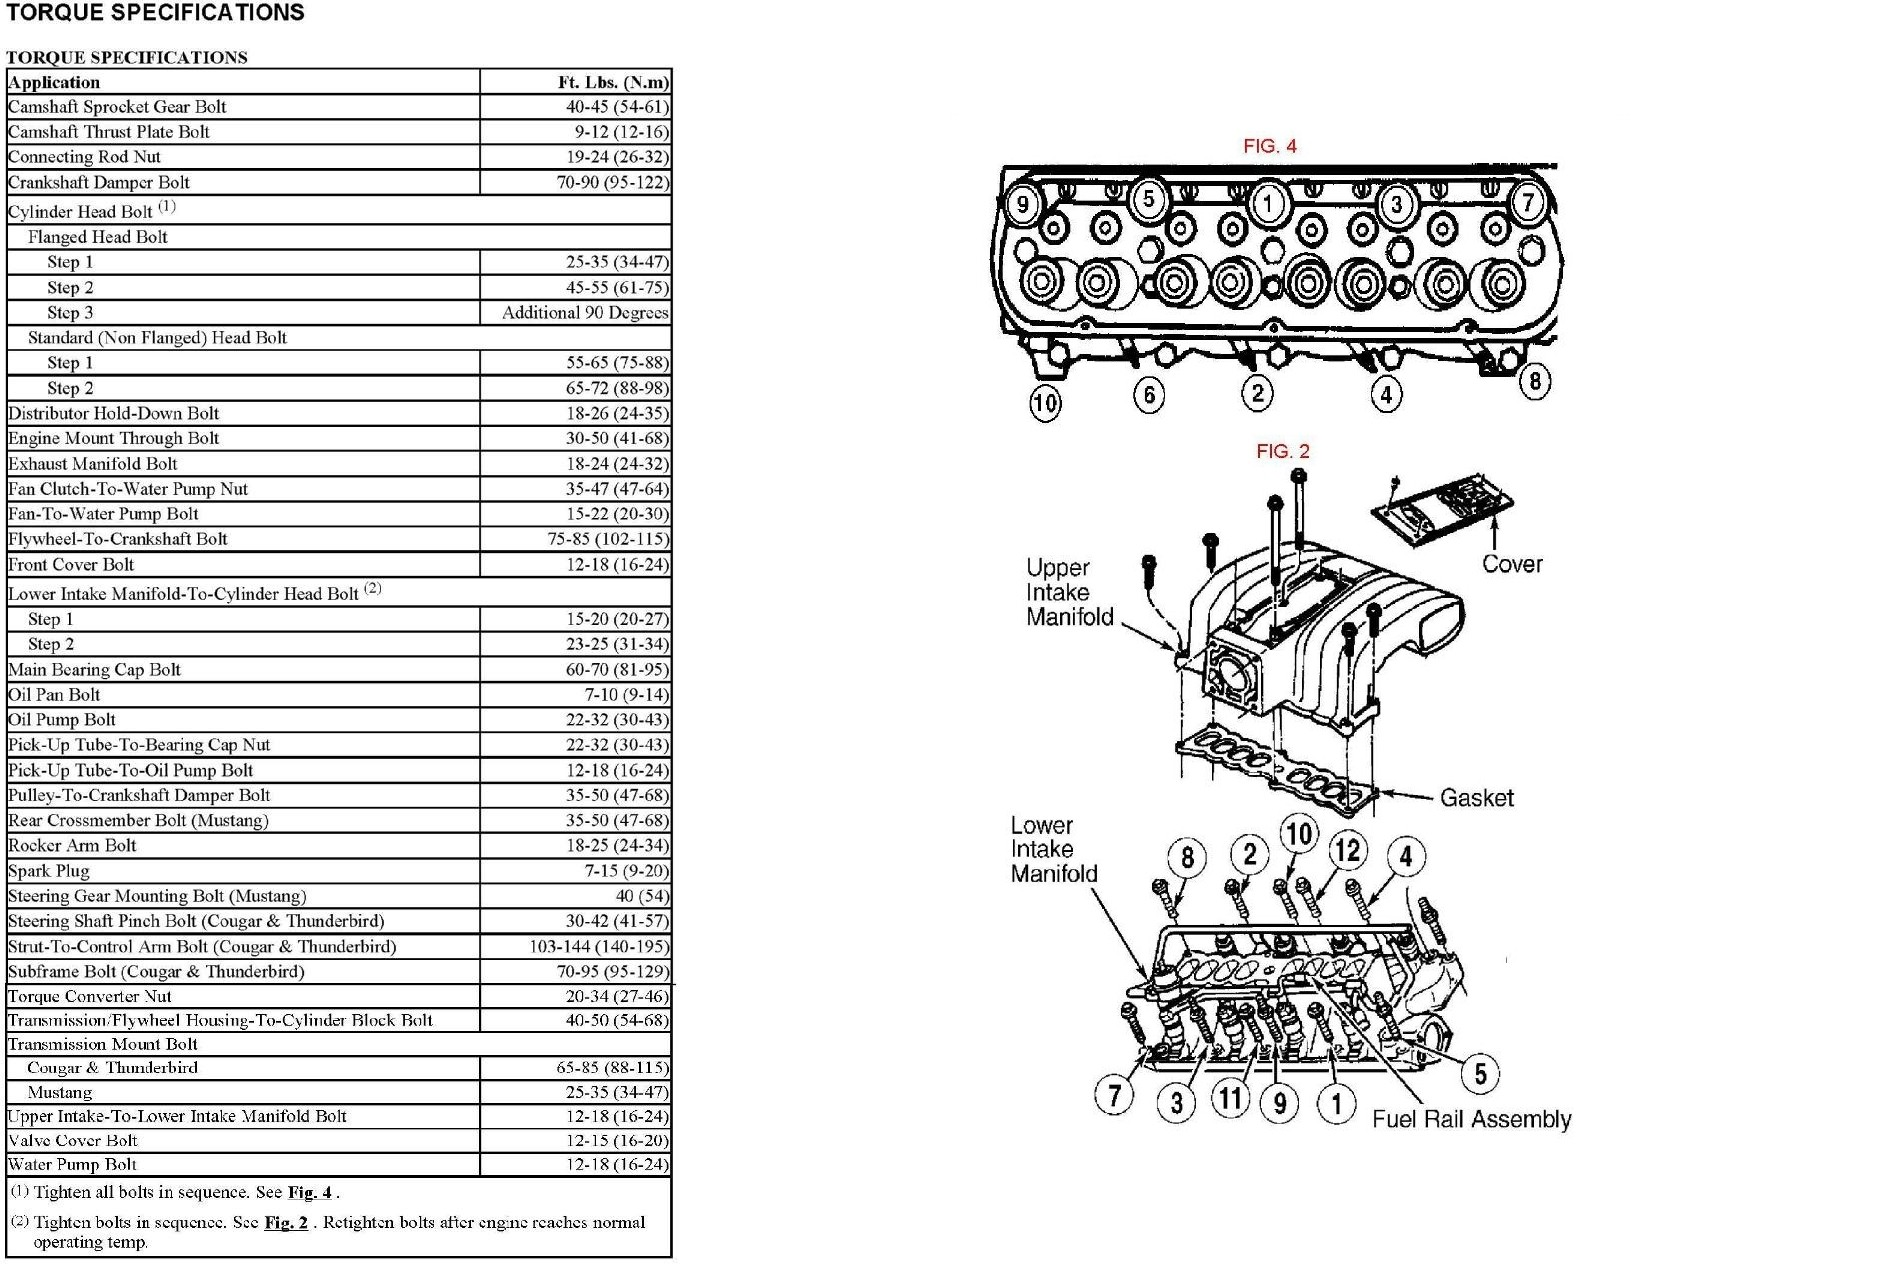 1971 ford maverick wiring diagram